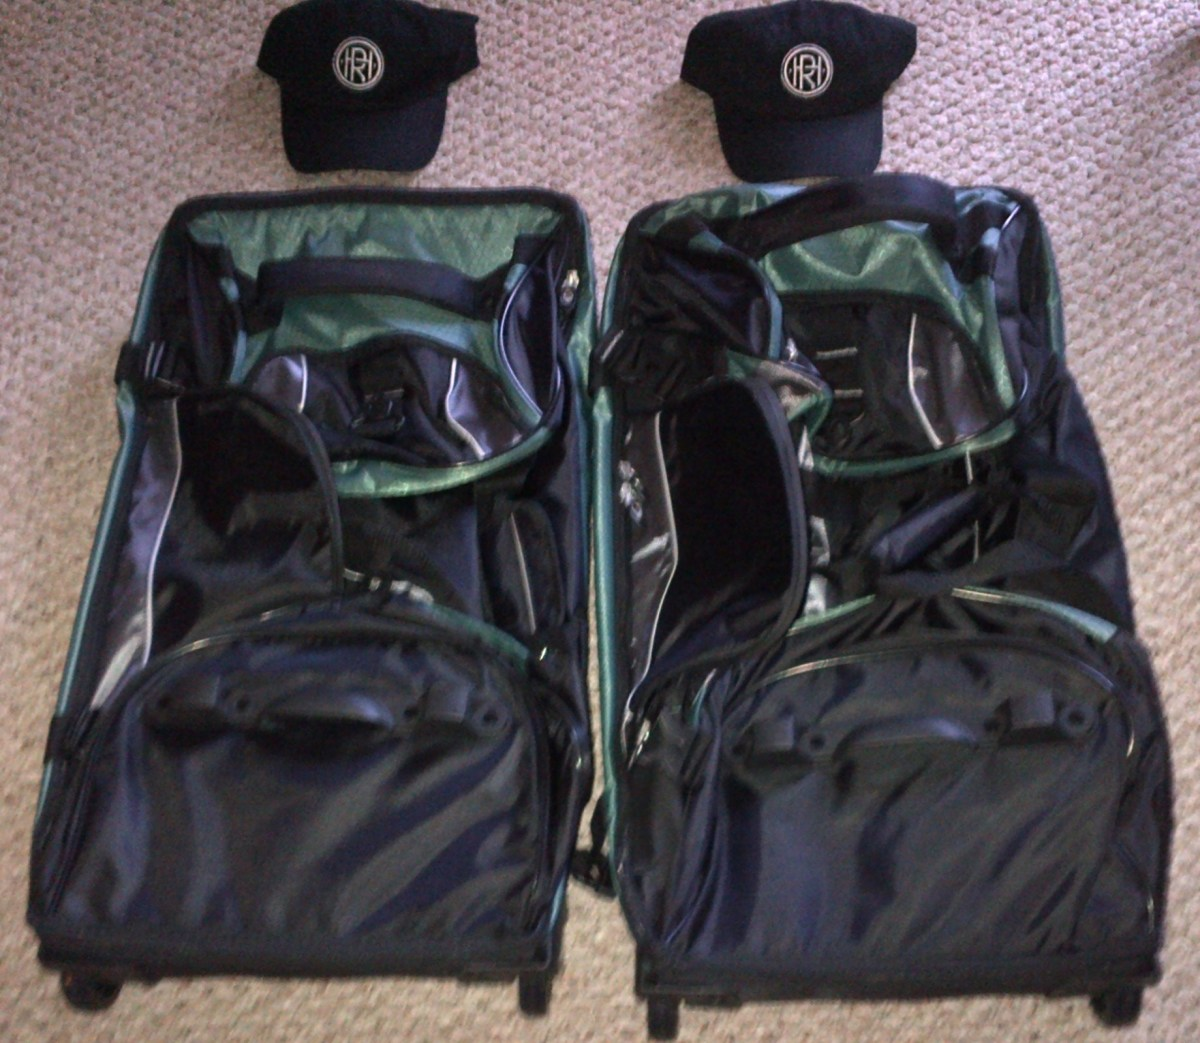 Surprise Luggage and Caps